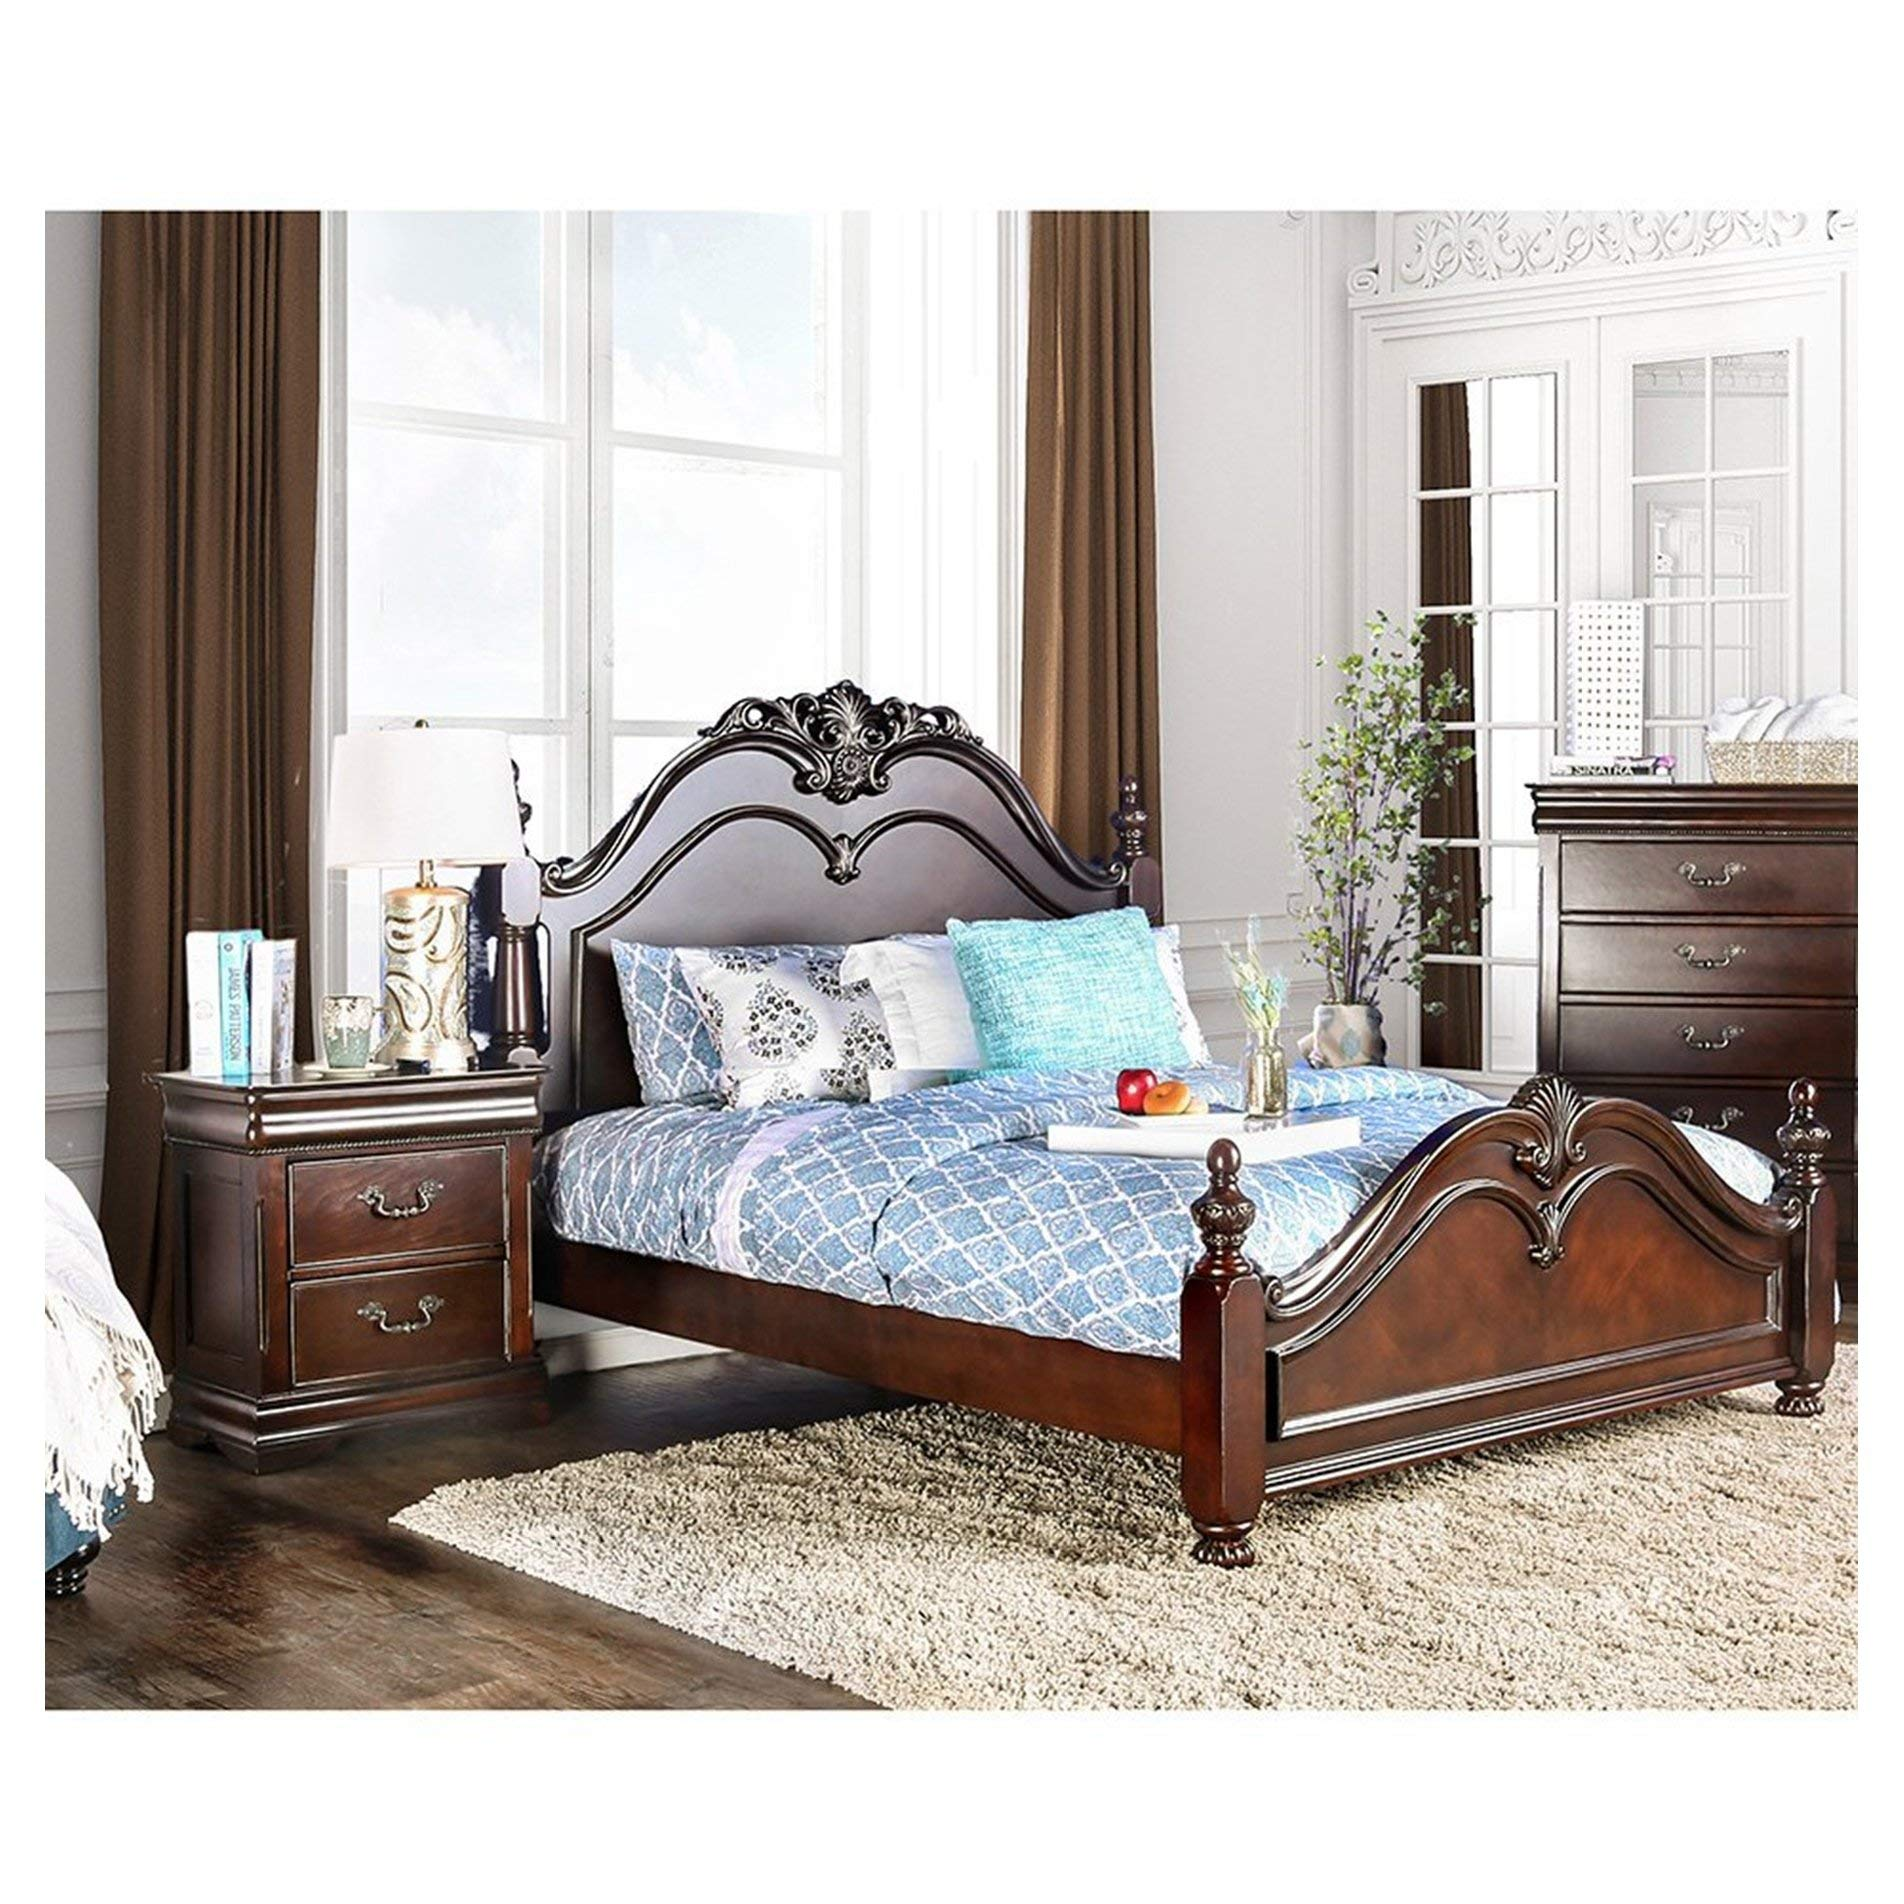 Furniture of America Bastillina English Style 2-Piece Cherry Poster Bed with Nightstand Set Oversized